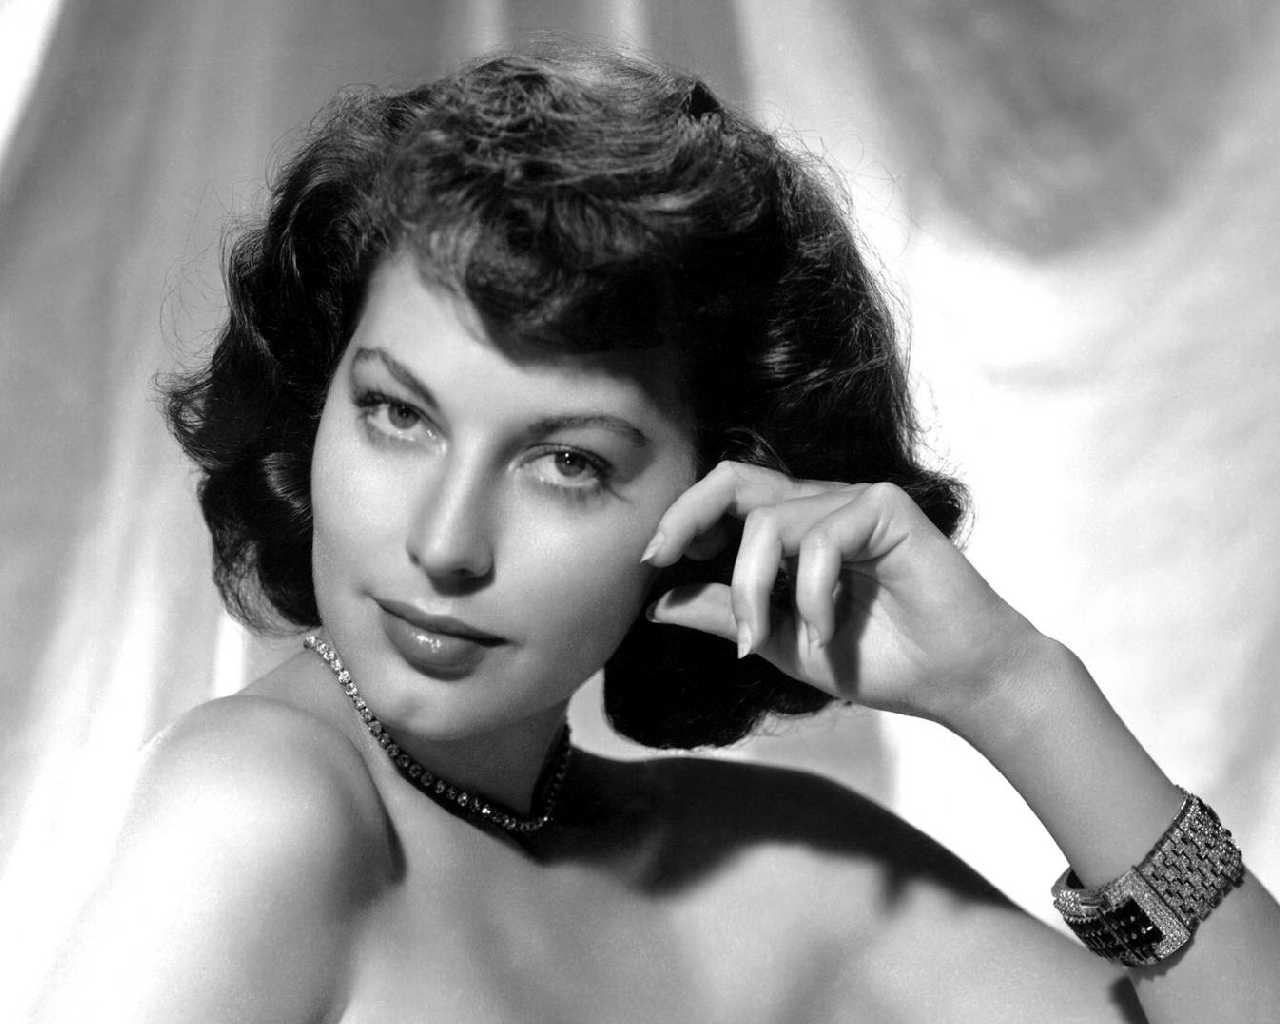 transgender rights vs Muslim rights Ava-Gardner-ava-gardner-31196256-1280-1024